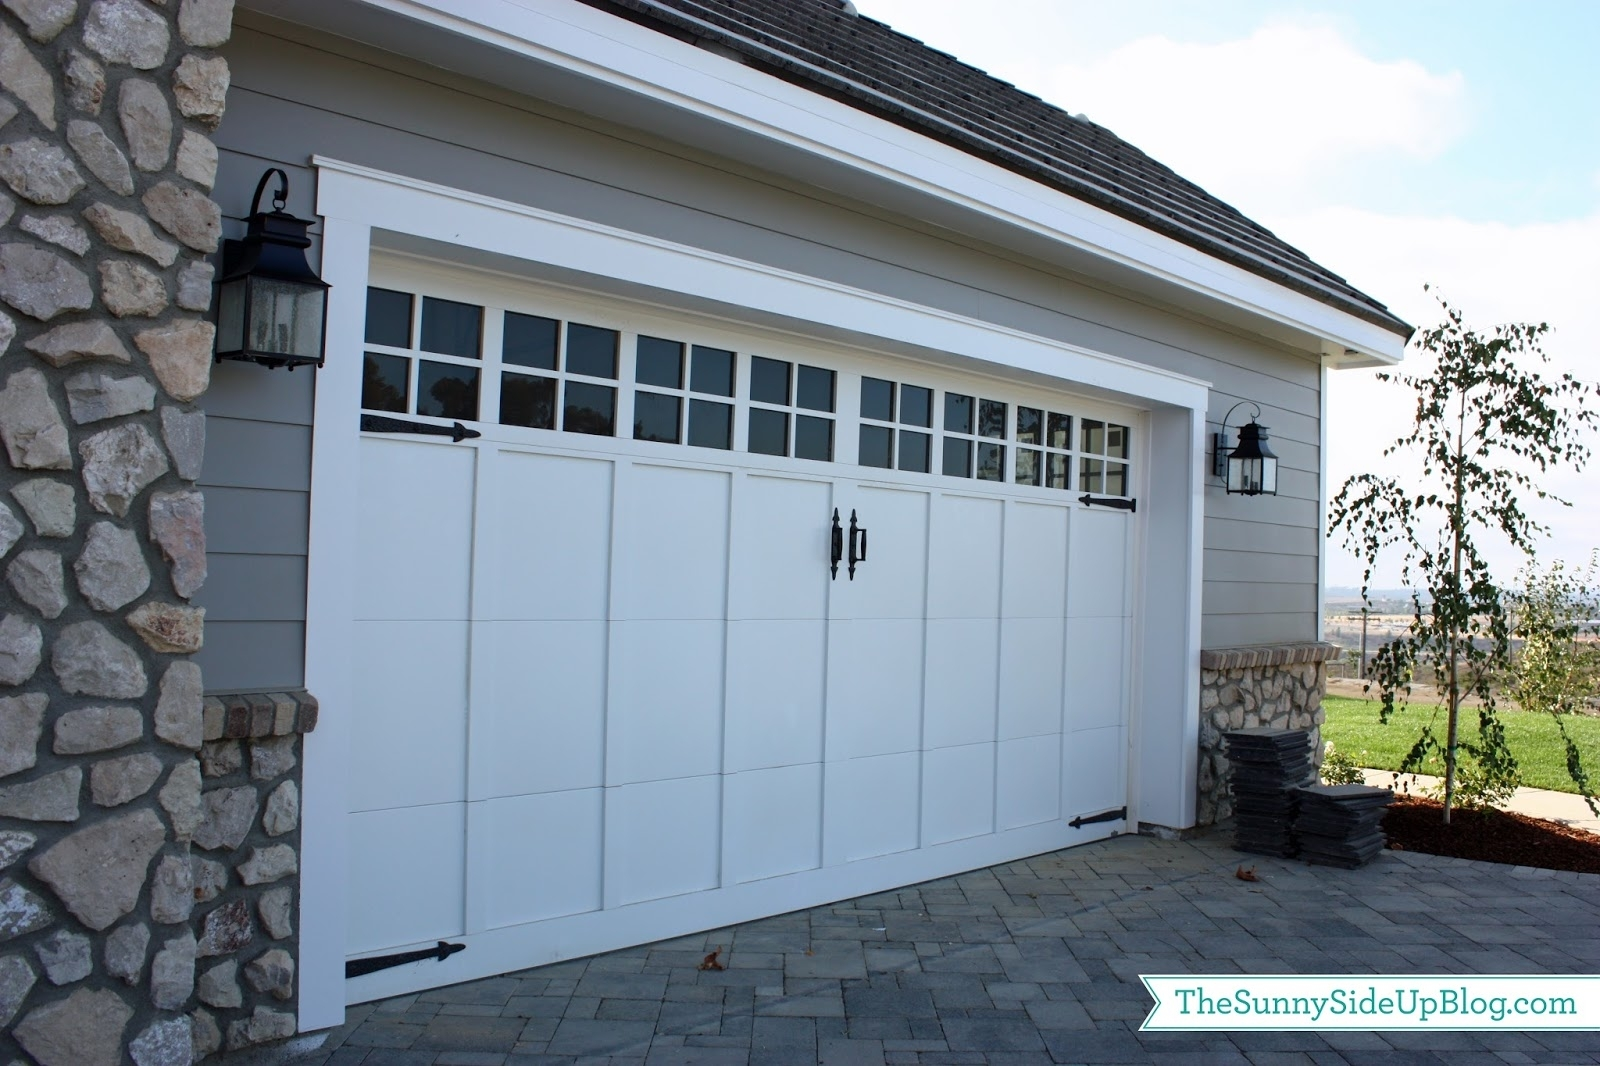 42 Garage Door Lanterns, Inspiring Outdoor Lantern Light Fixtures Within Outdoor Garage Lanterns (View 4 of 20)